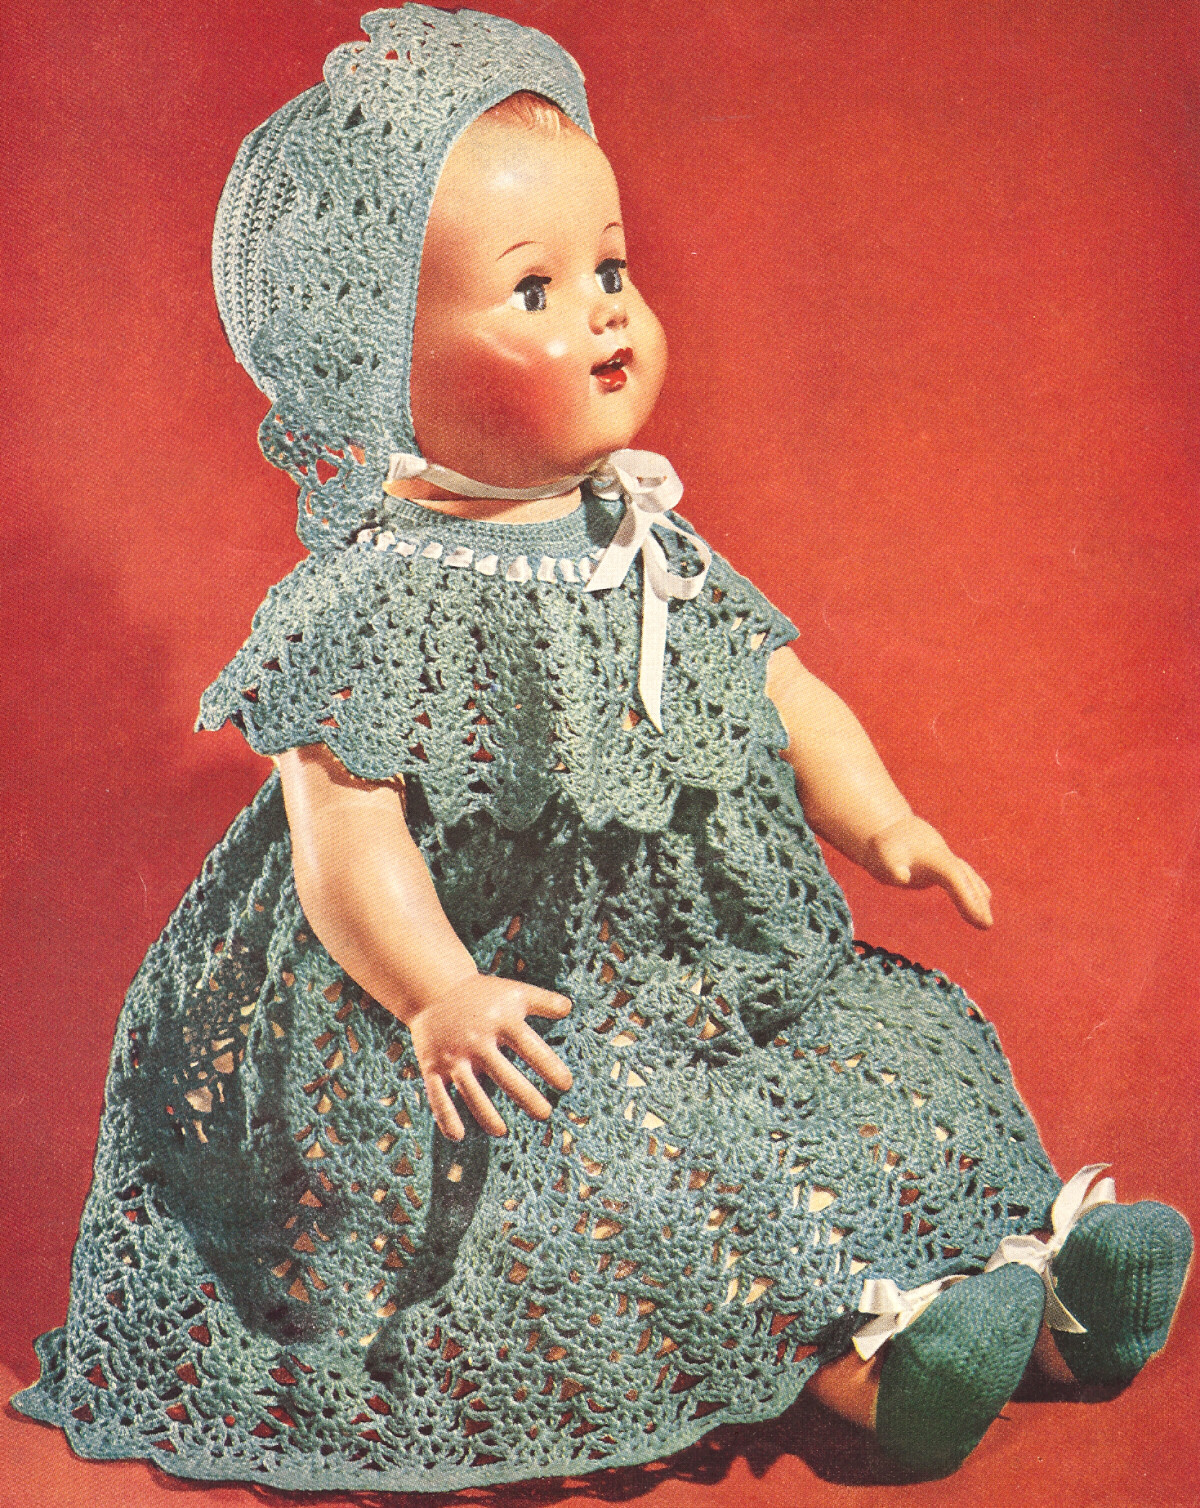 BABY CROCHET DOLL PATTERN – Crochet Patterns